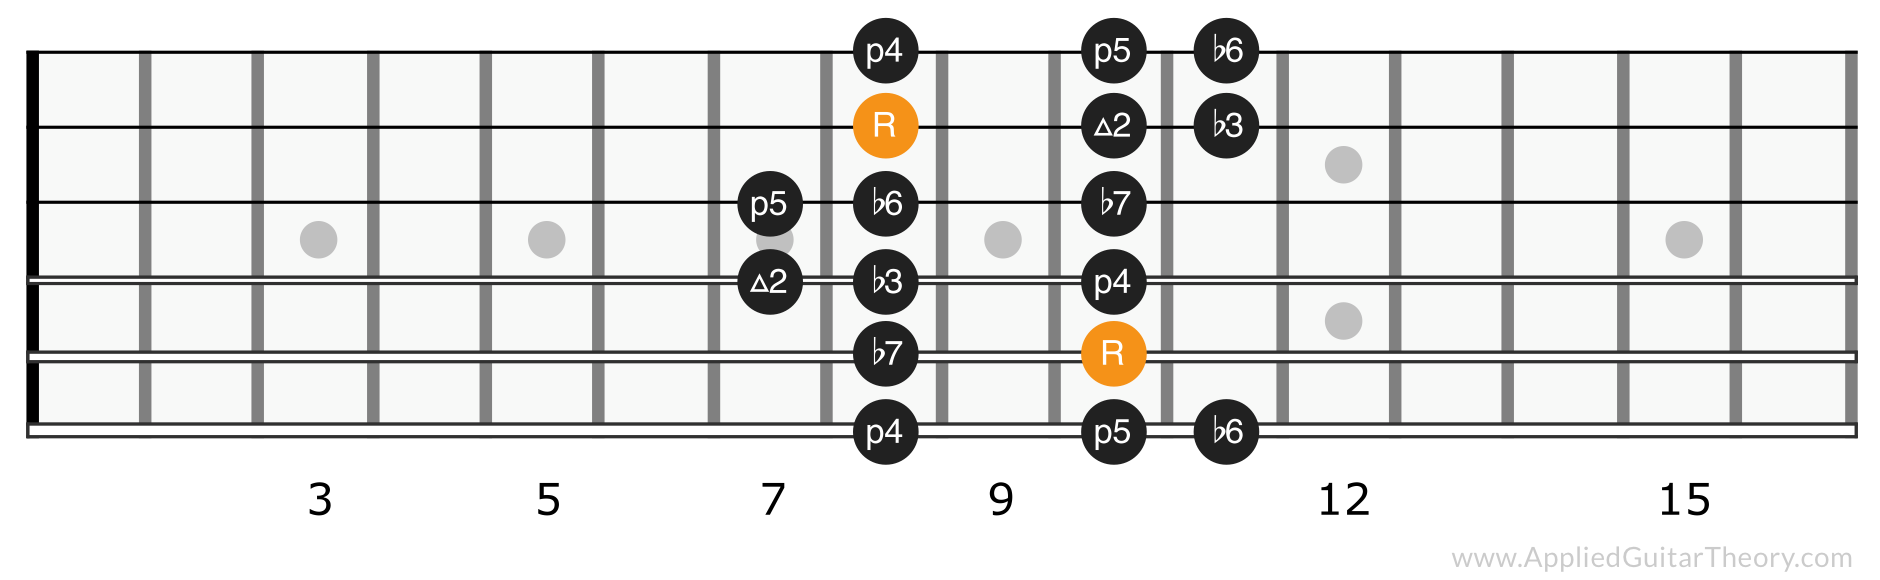 Minor scale position 3